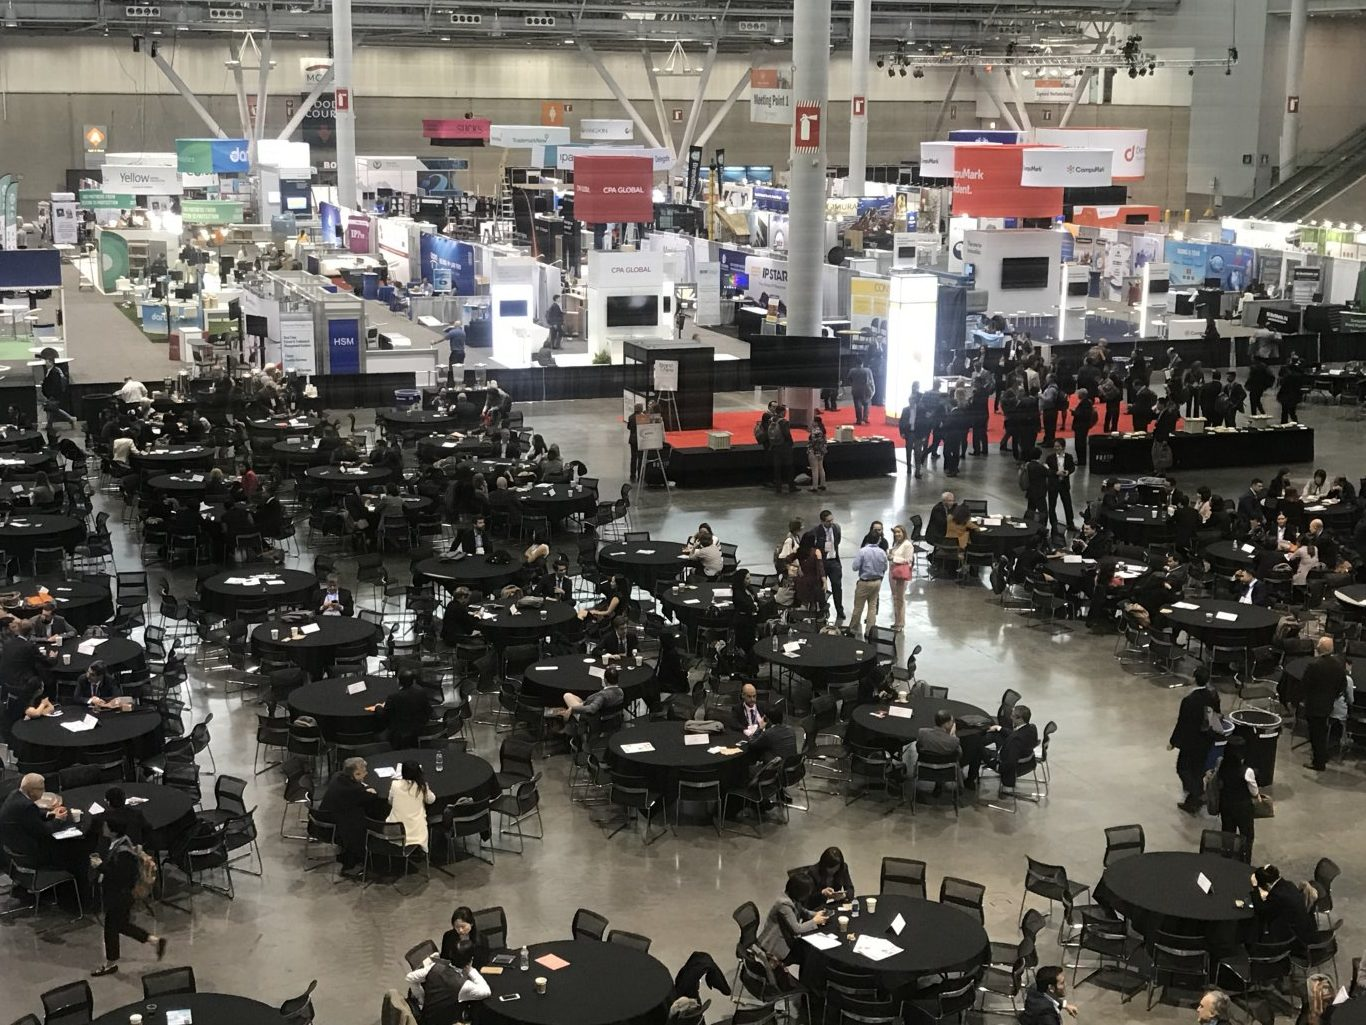 Overview Of Hospitality area in INTA Boston 2019